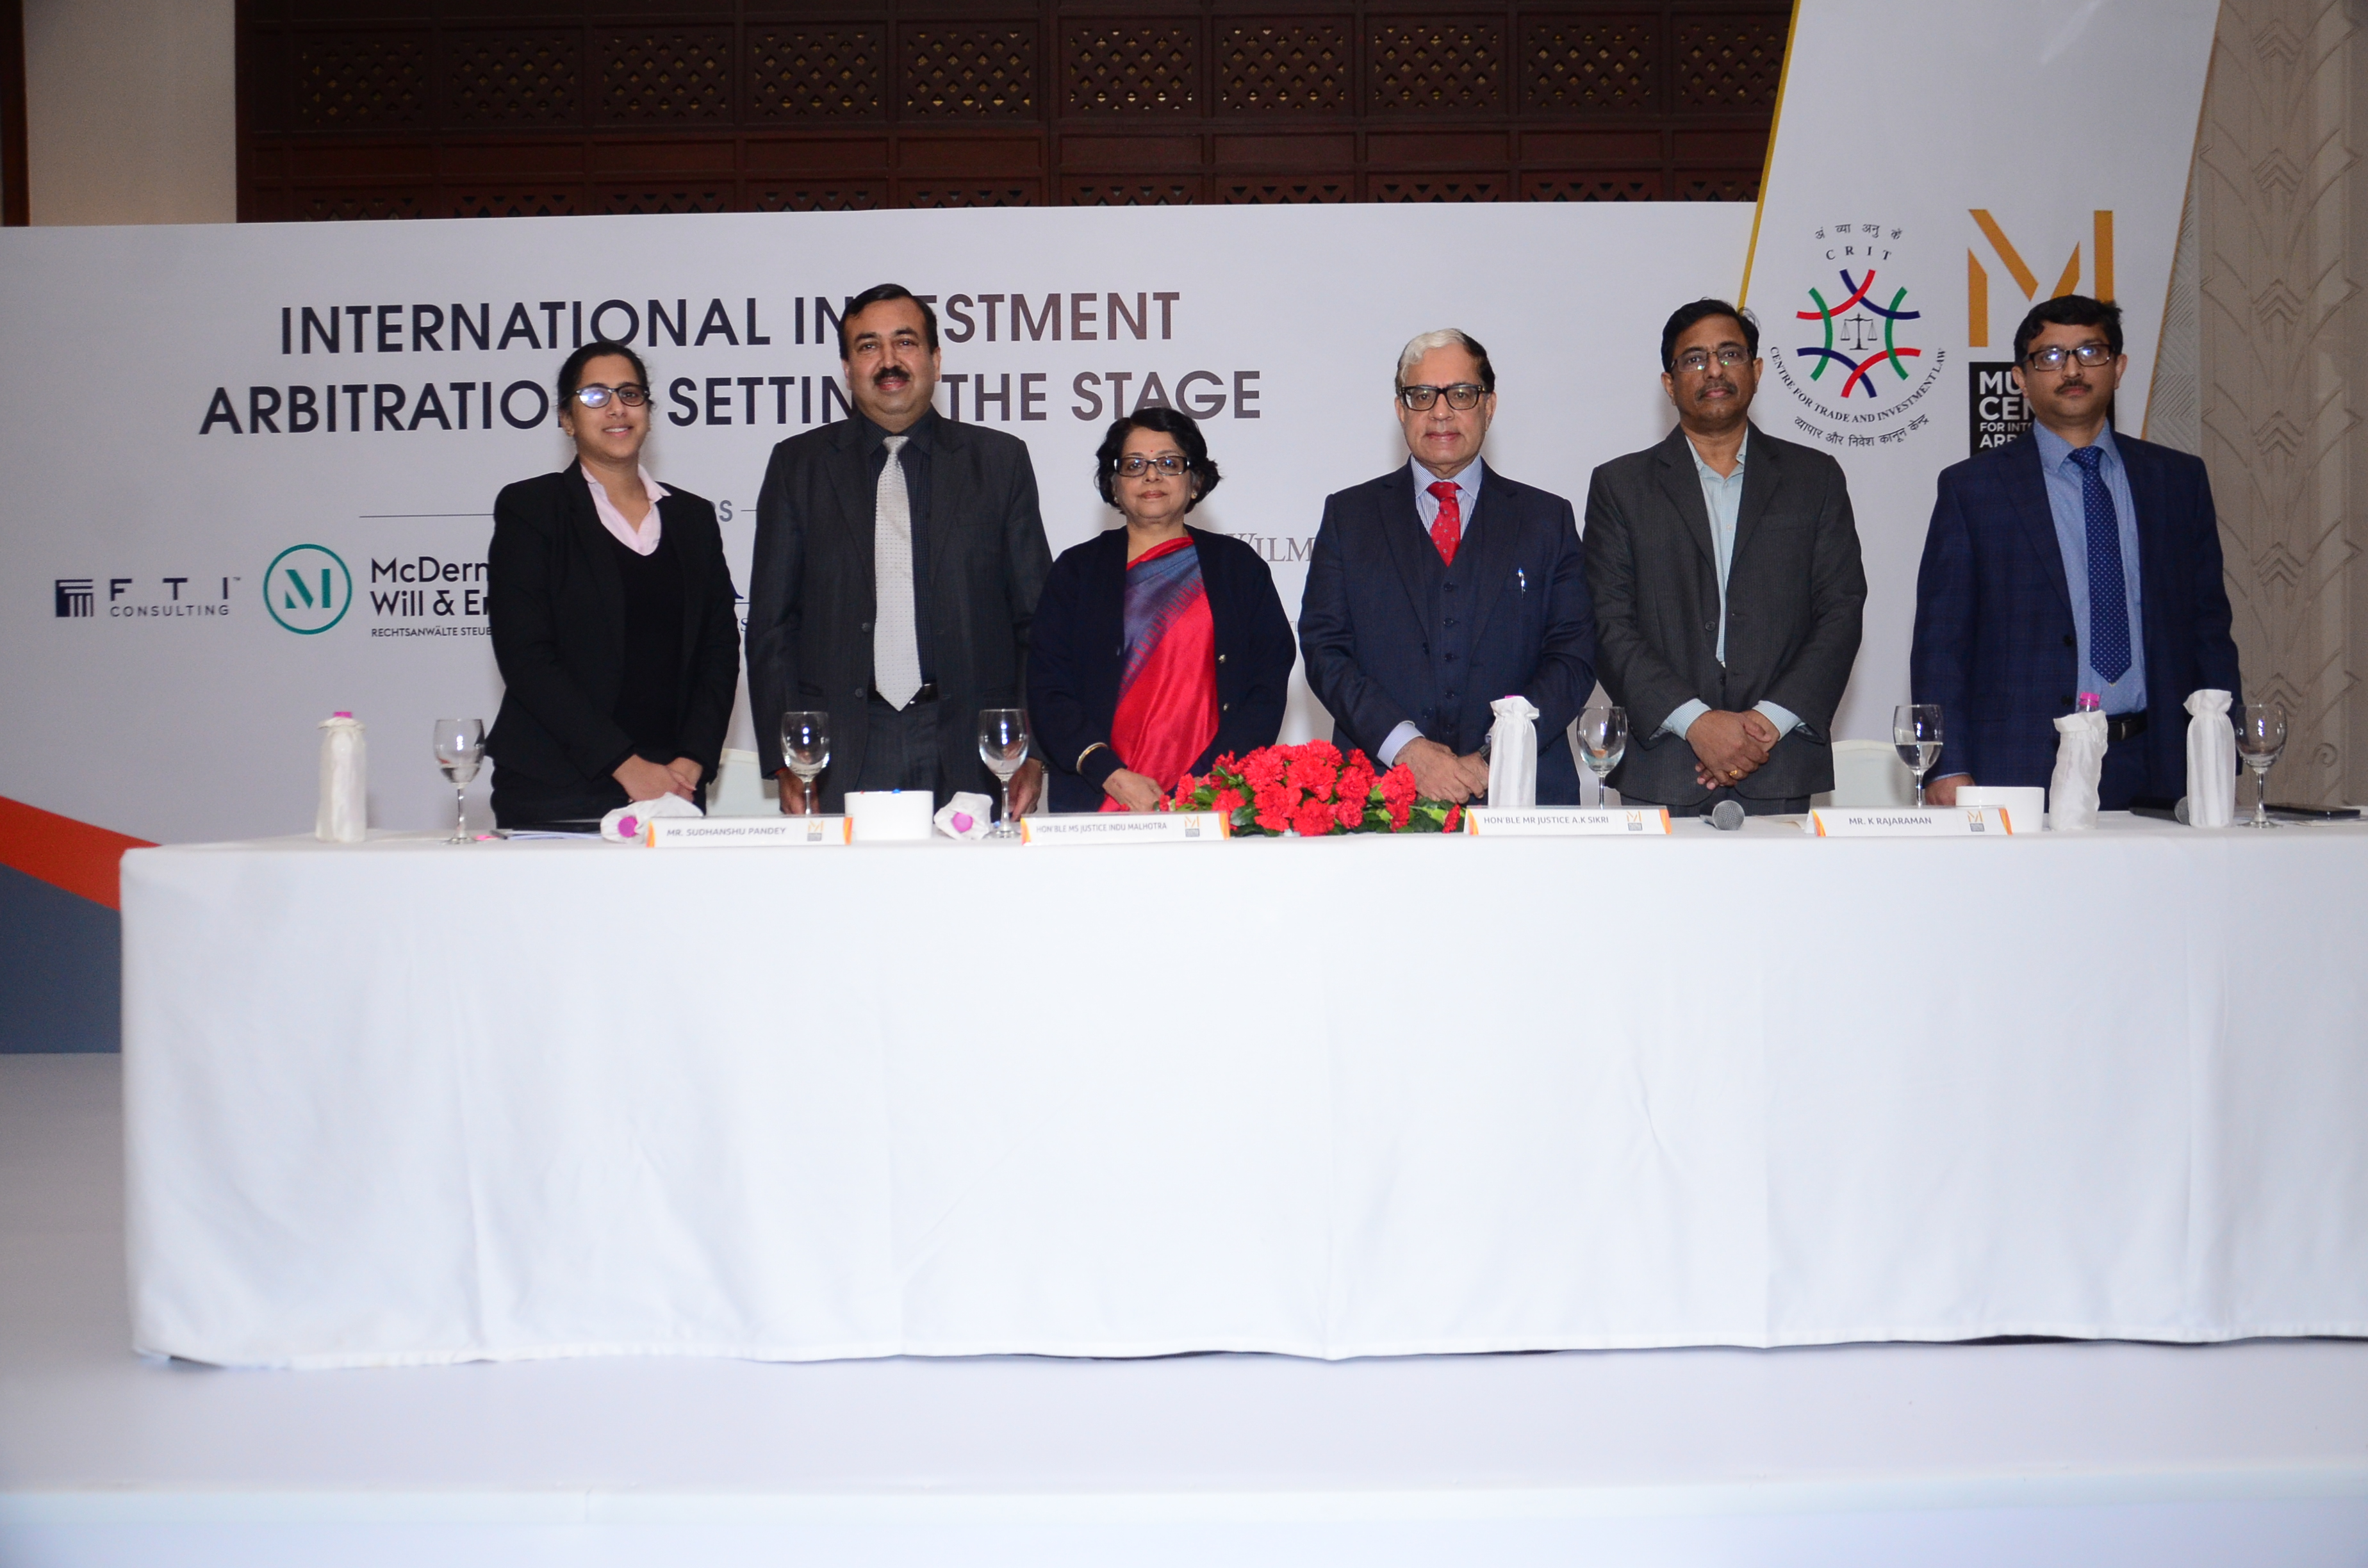 Conference on International Investment Arbitration organised by MCIA and CTIL